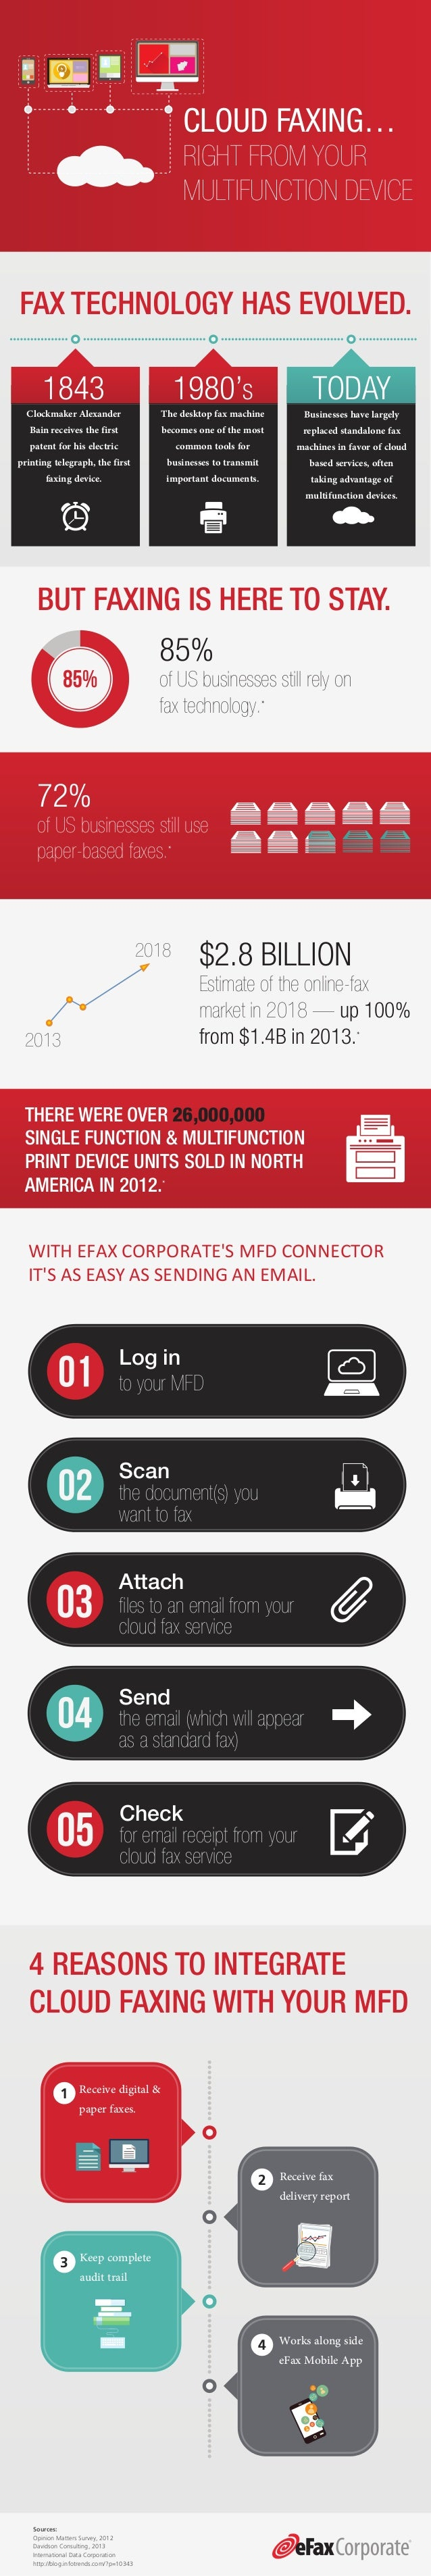 CLOUD FAXING… RIGHT FROM YOUR MULTIFUNCTION DEVICE 85% of US businesses still rely on fax technology.* $2.8 BILLION Estima...